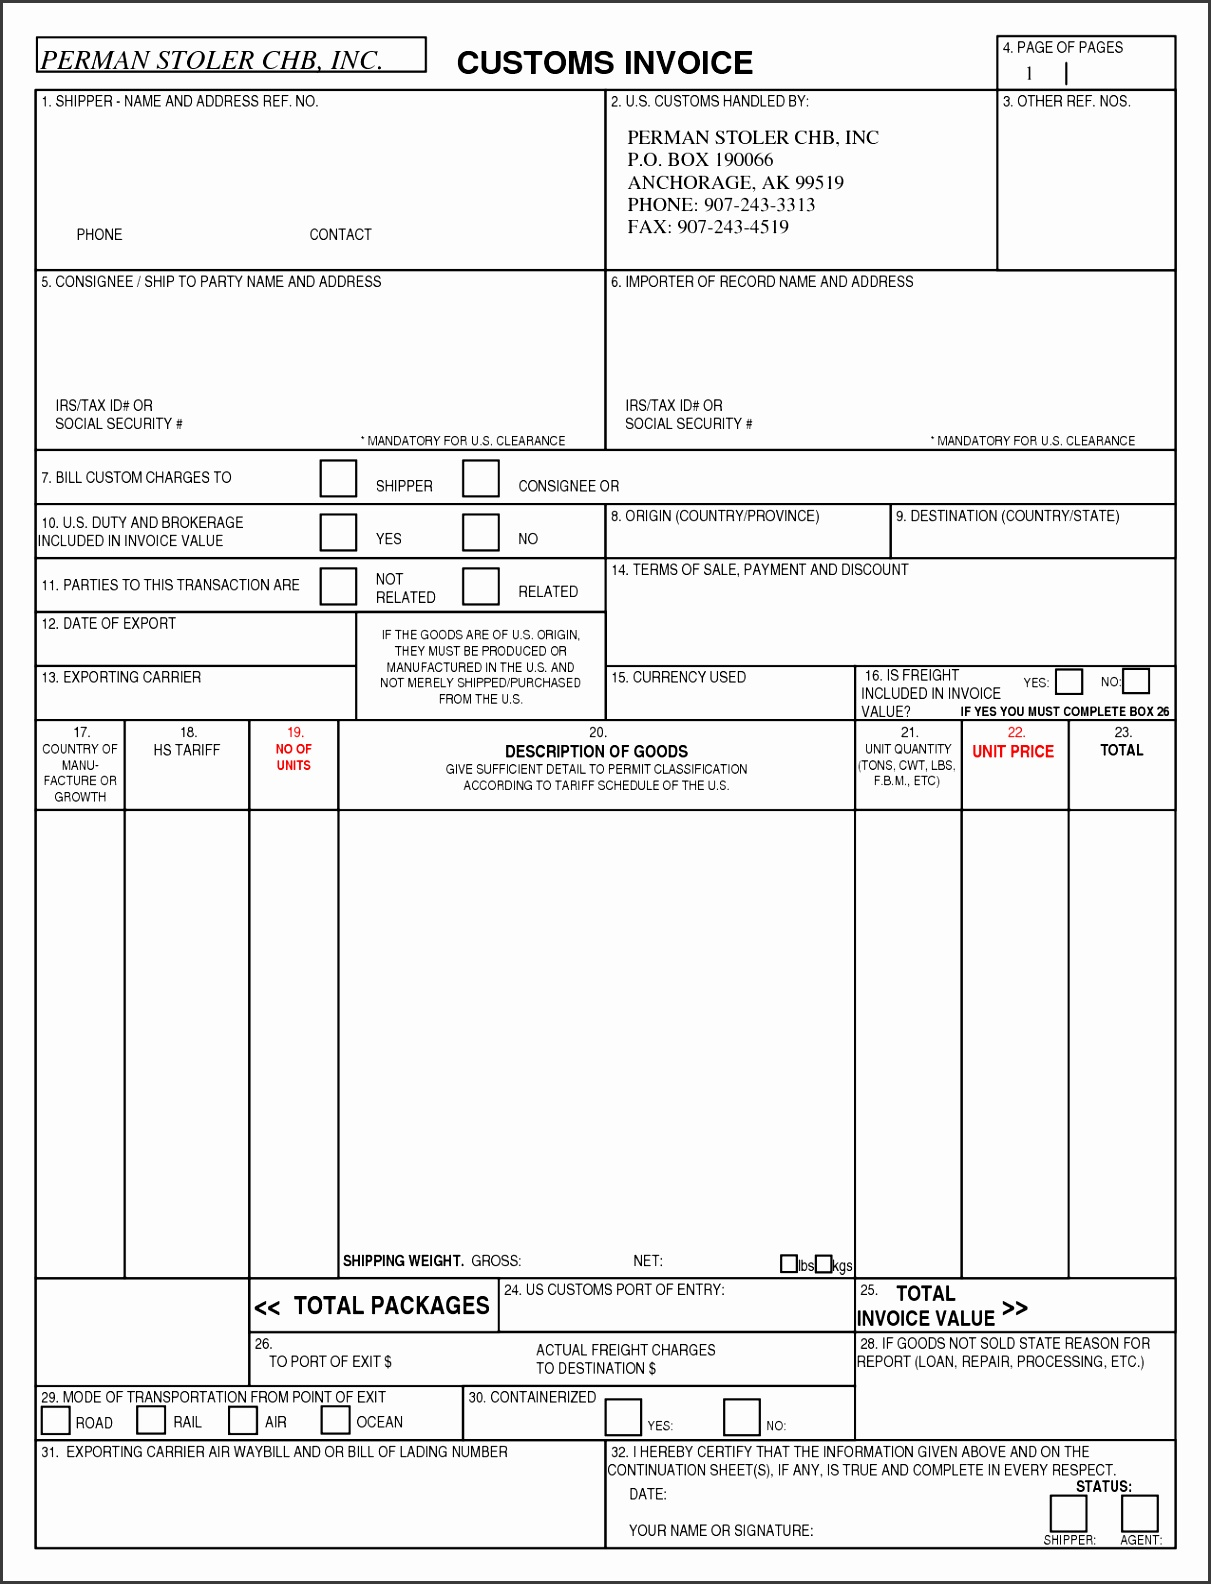 8 best images of custom invoice forms canada customs invoice Invoice templates